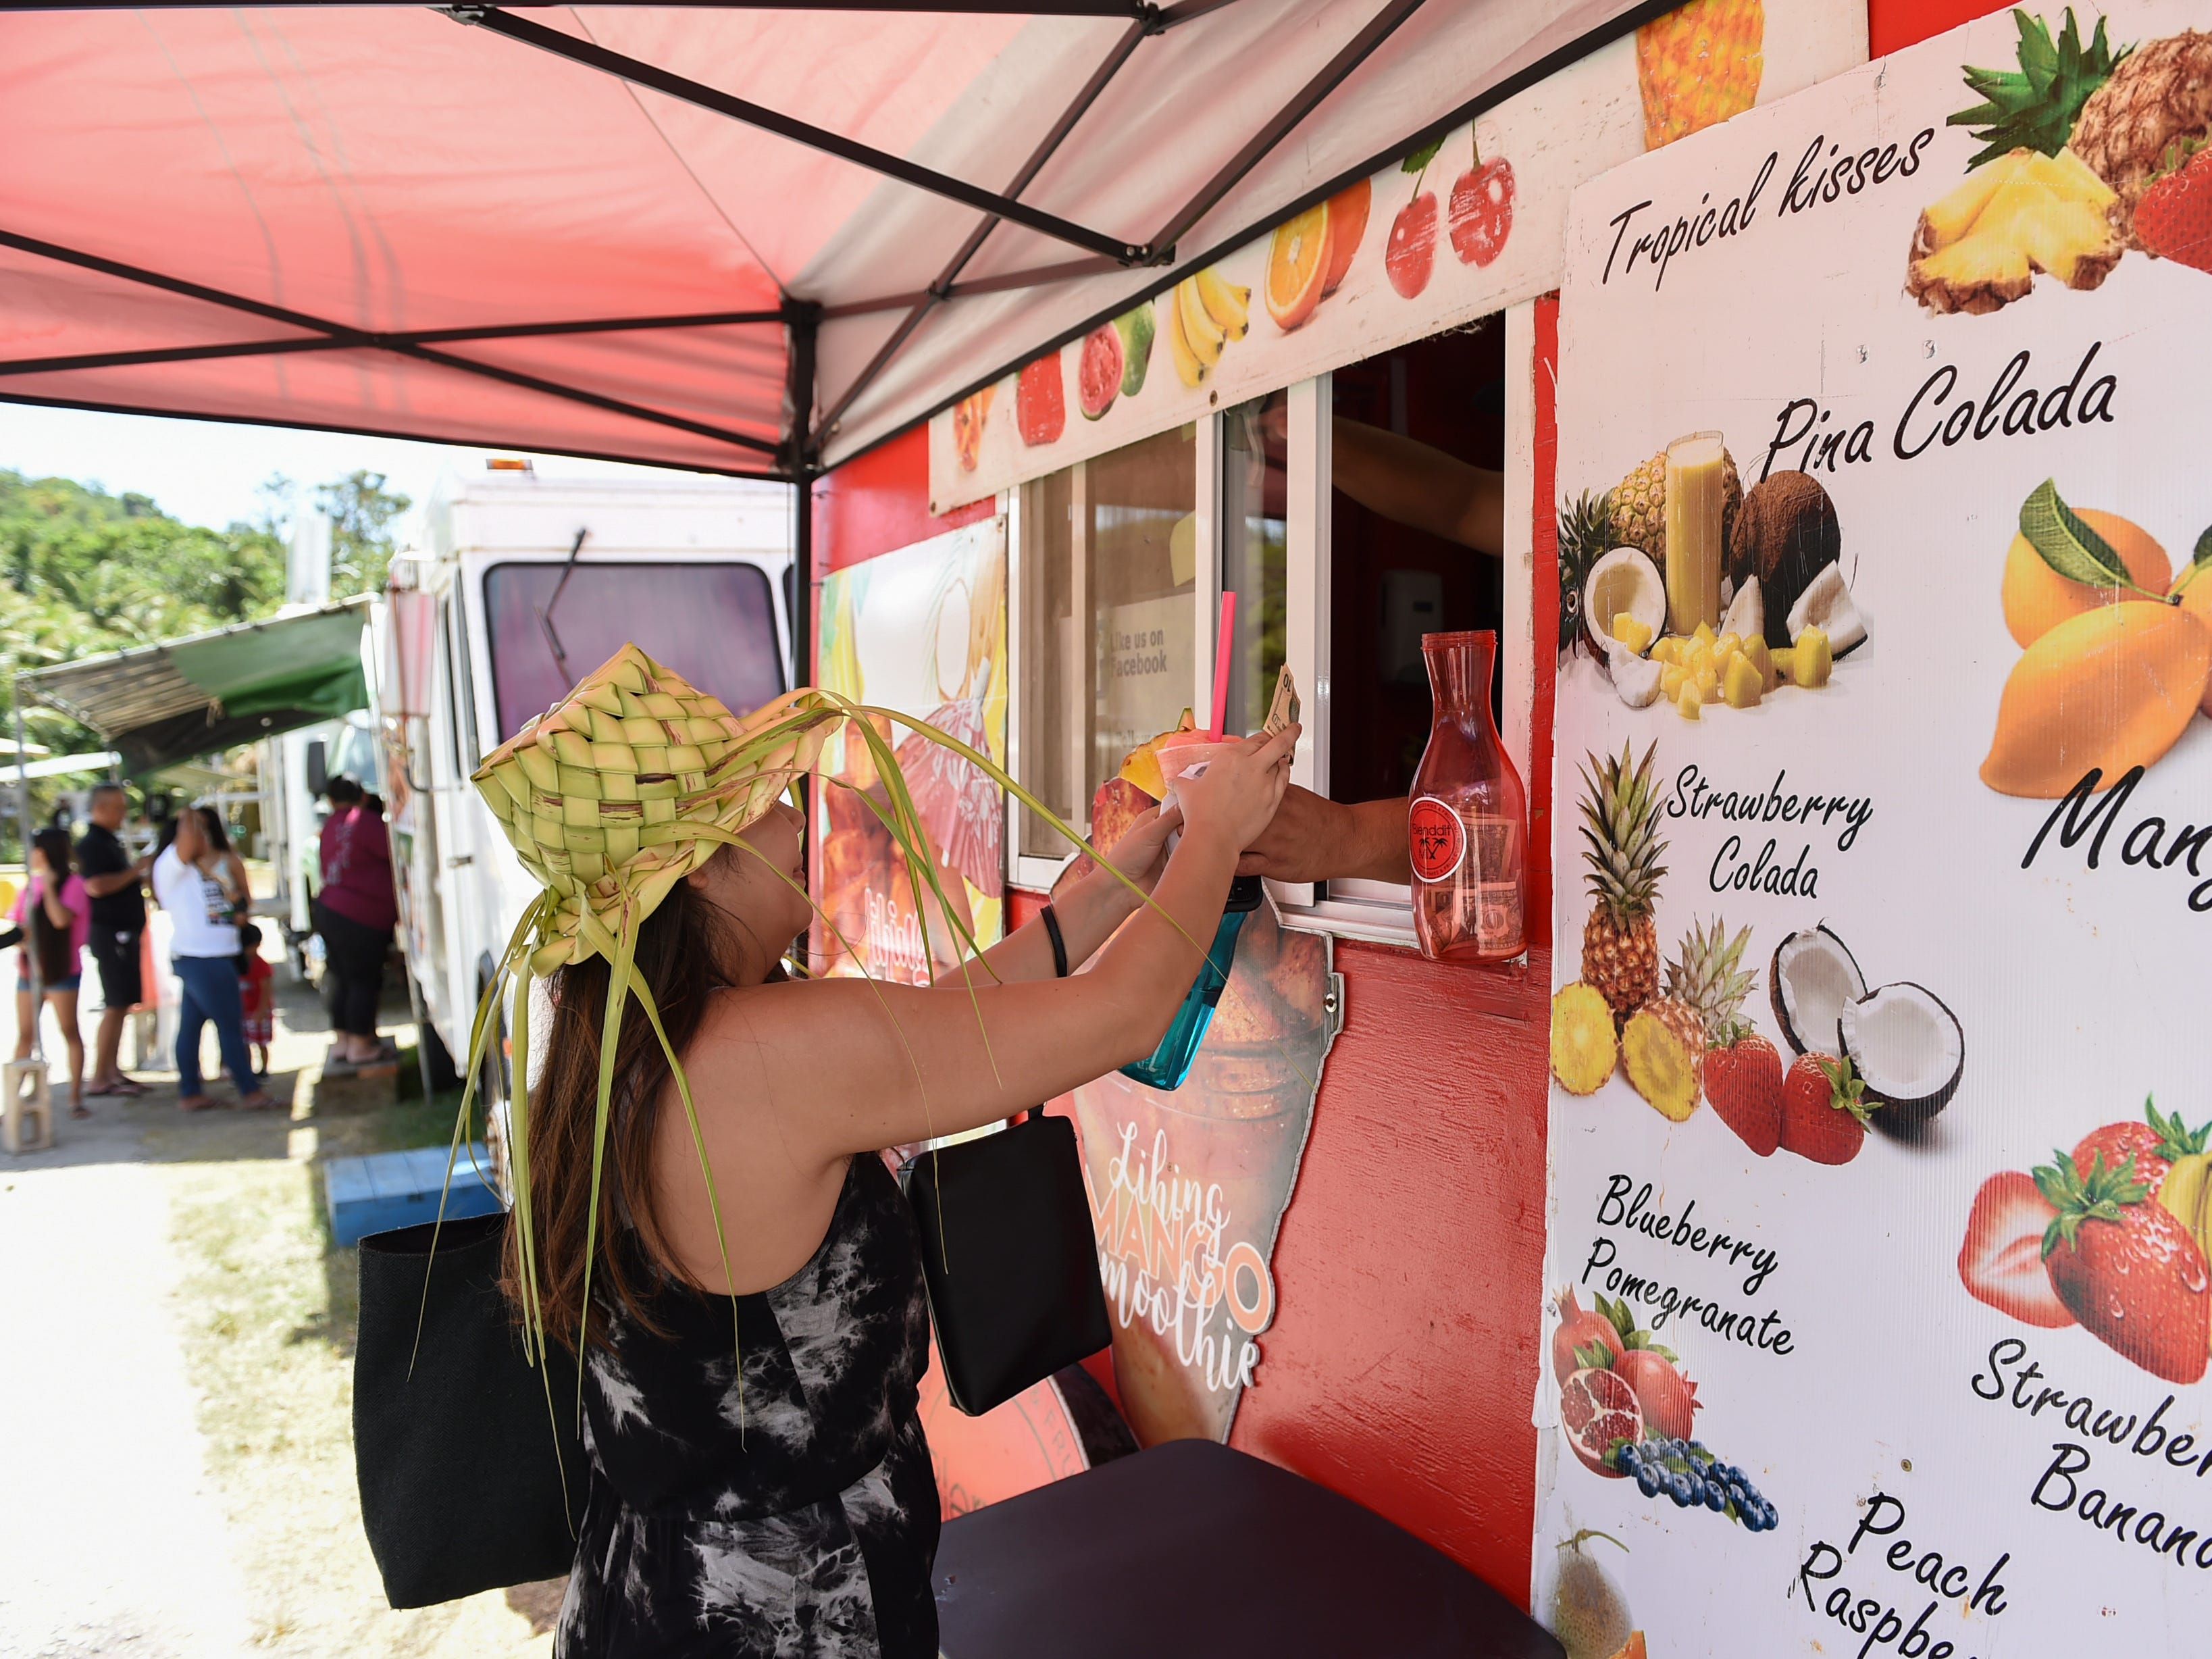 A customer receives her drink at the Blenddit Mix stand during the Guam History and Chamorro Heritage Day Festival 2019 at Umatac Bay Park, March 10, 2019.